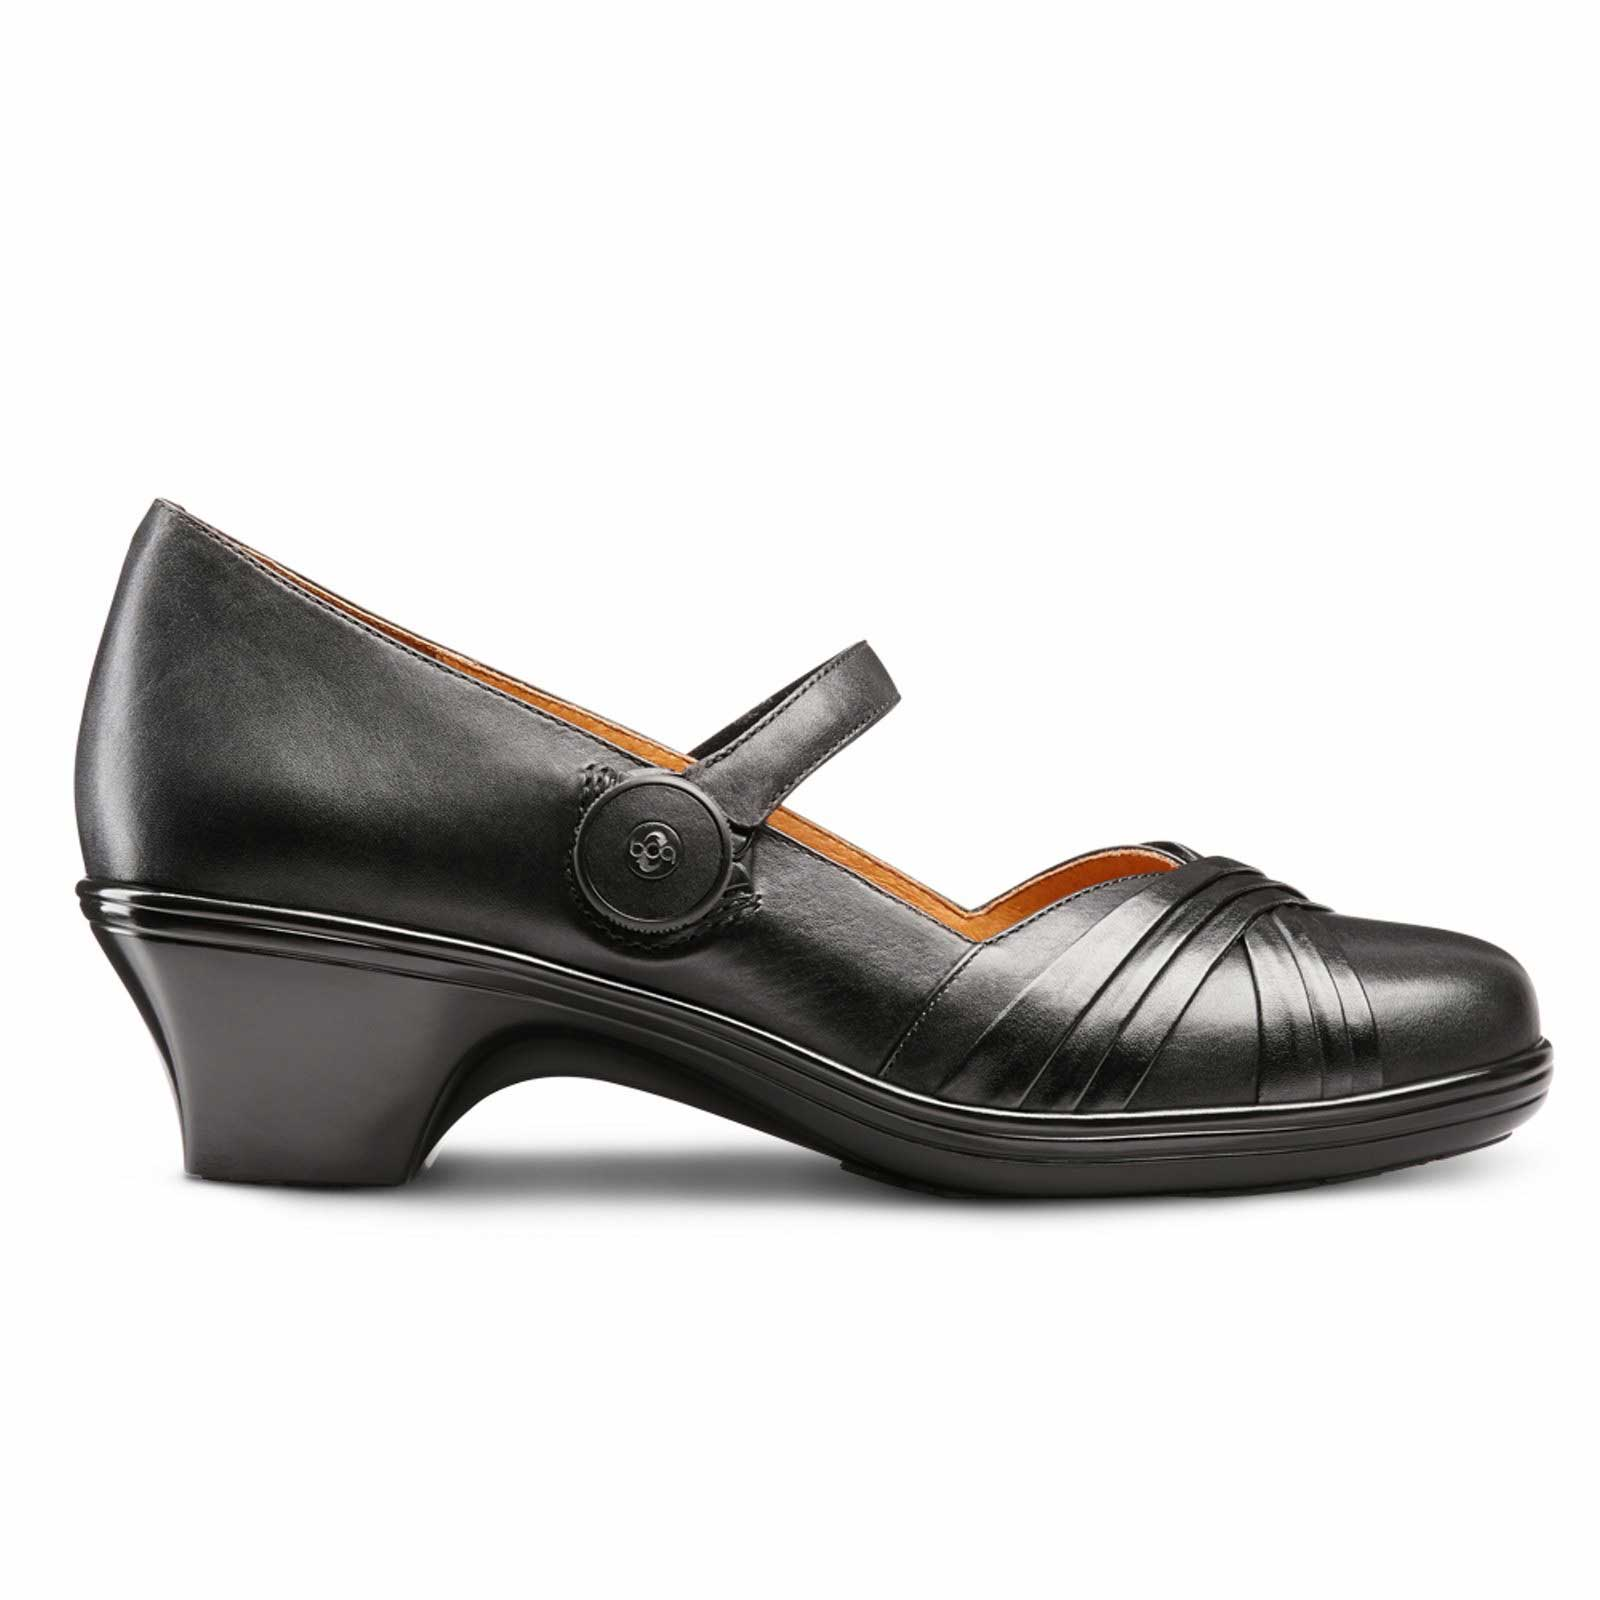 leather and classic comforter ladies womens comfort plus heels soft margo elegant wedges shoes